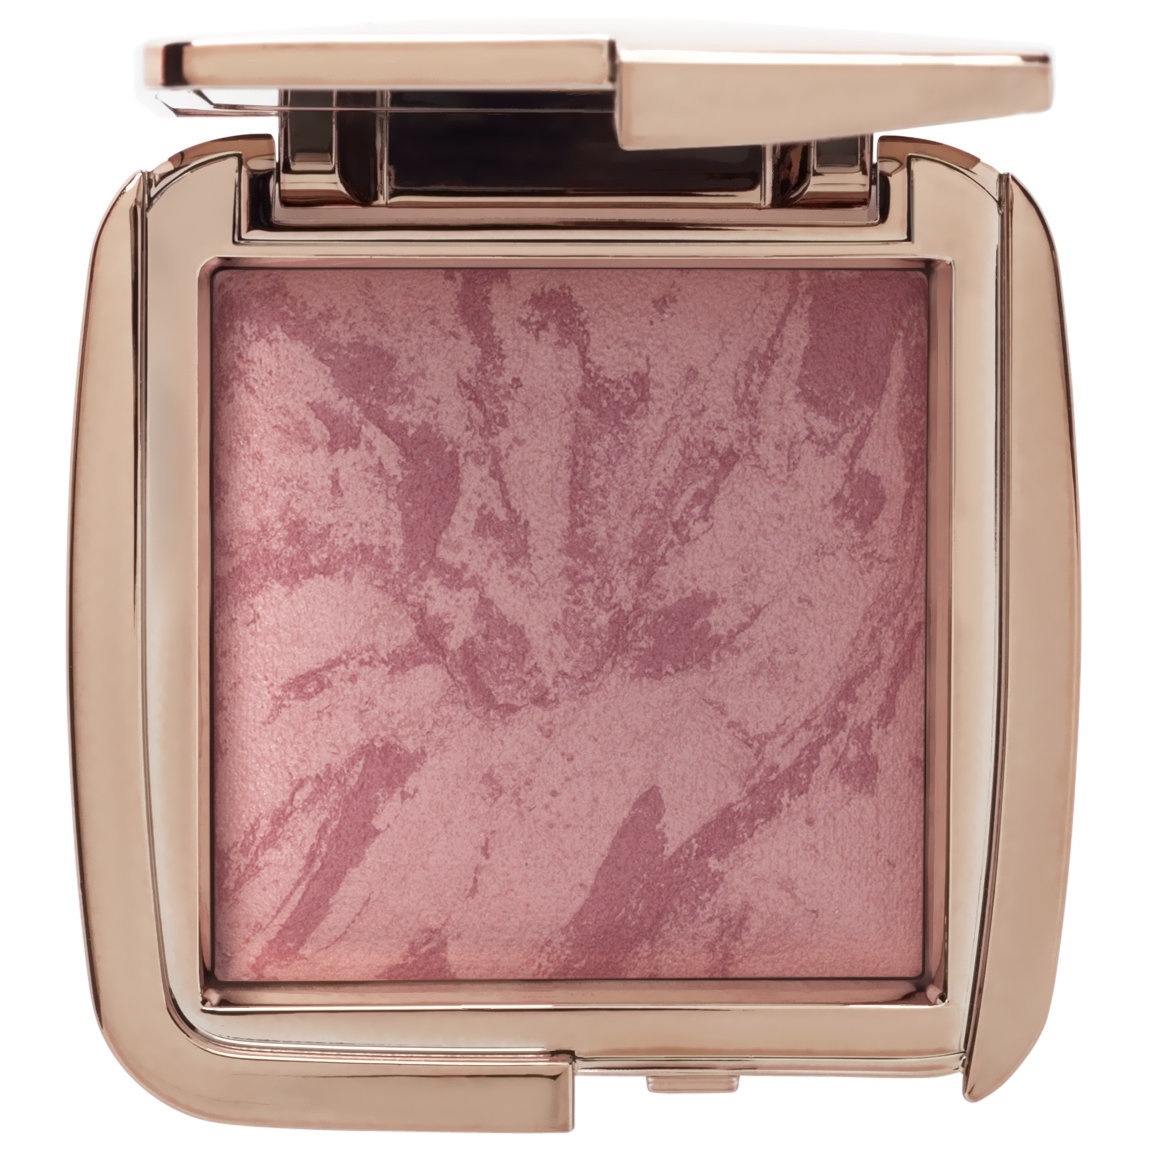 Hourglass Ambient Lighting Blush Mood Exposure alternative view 1 - product swatch.